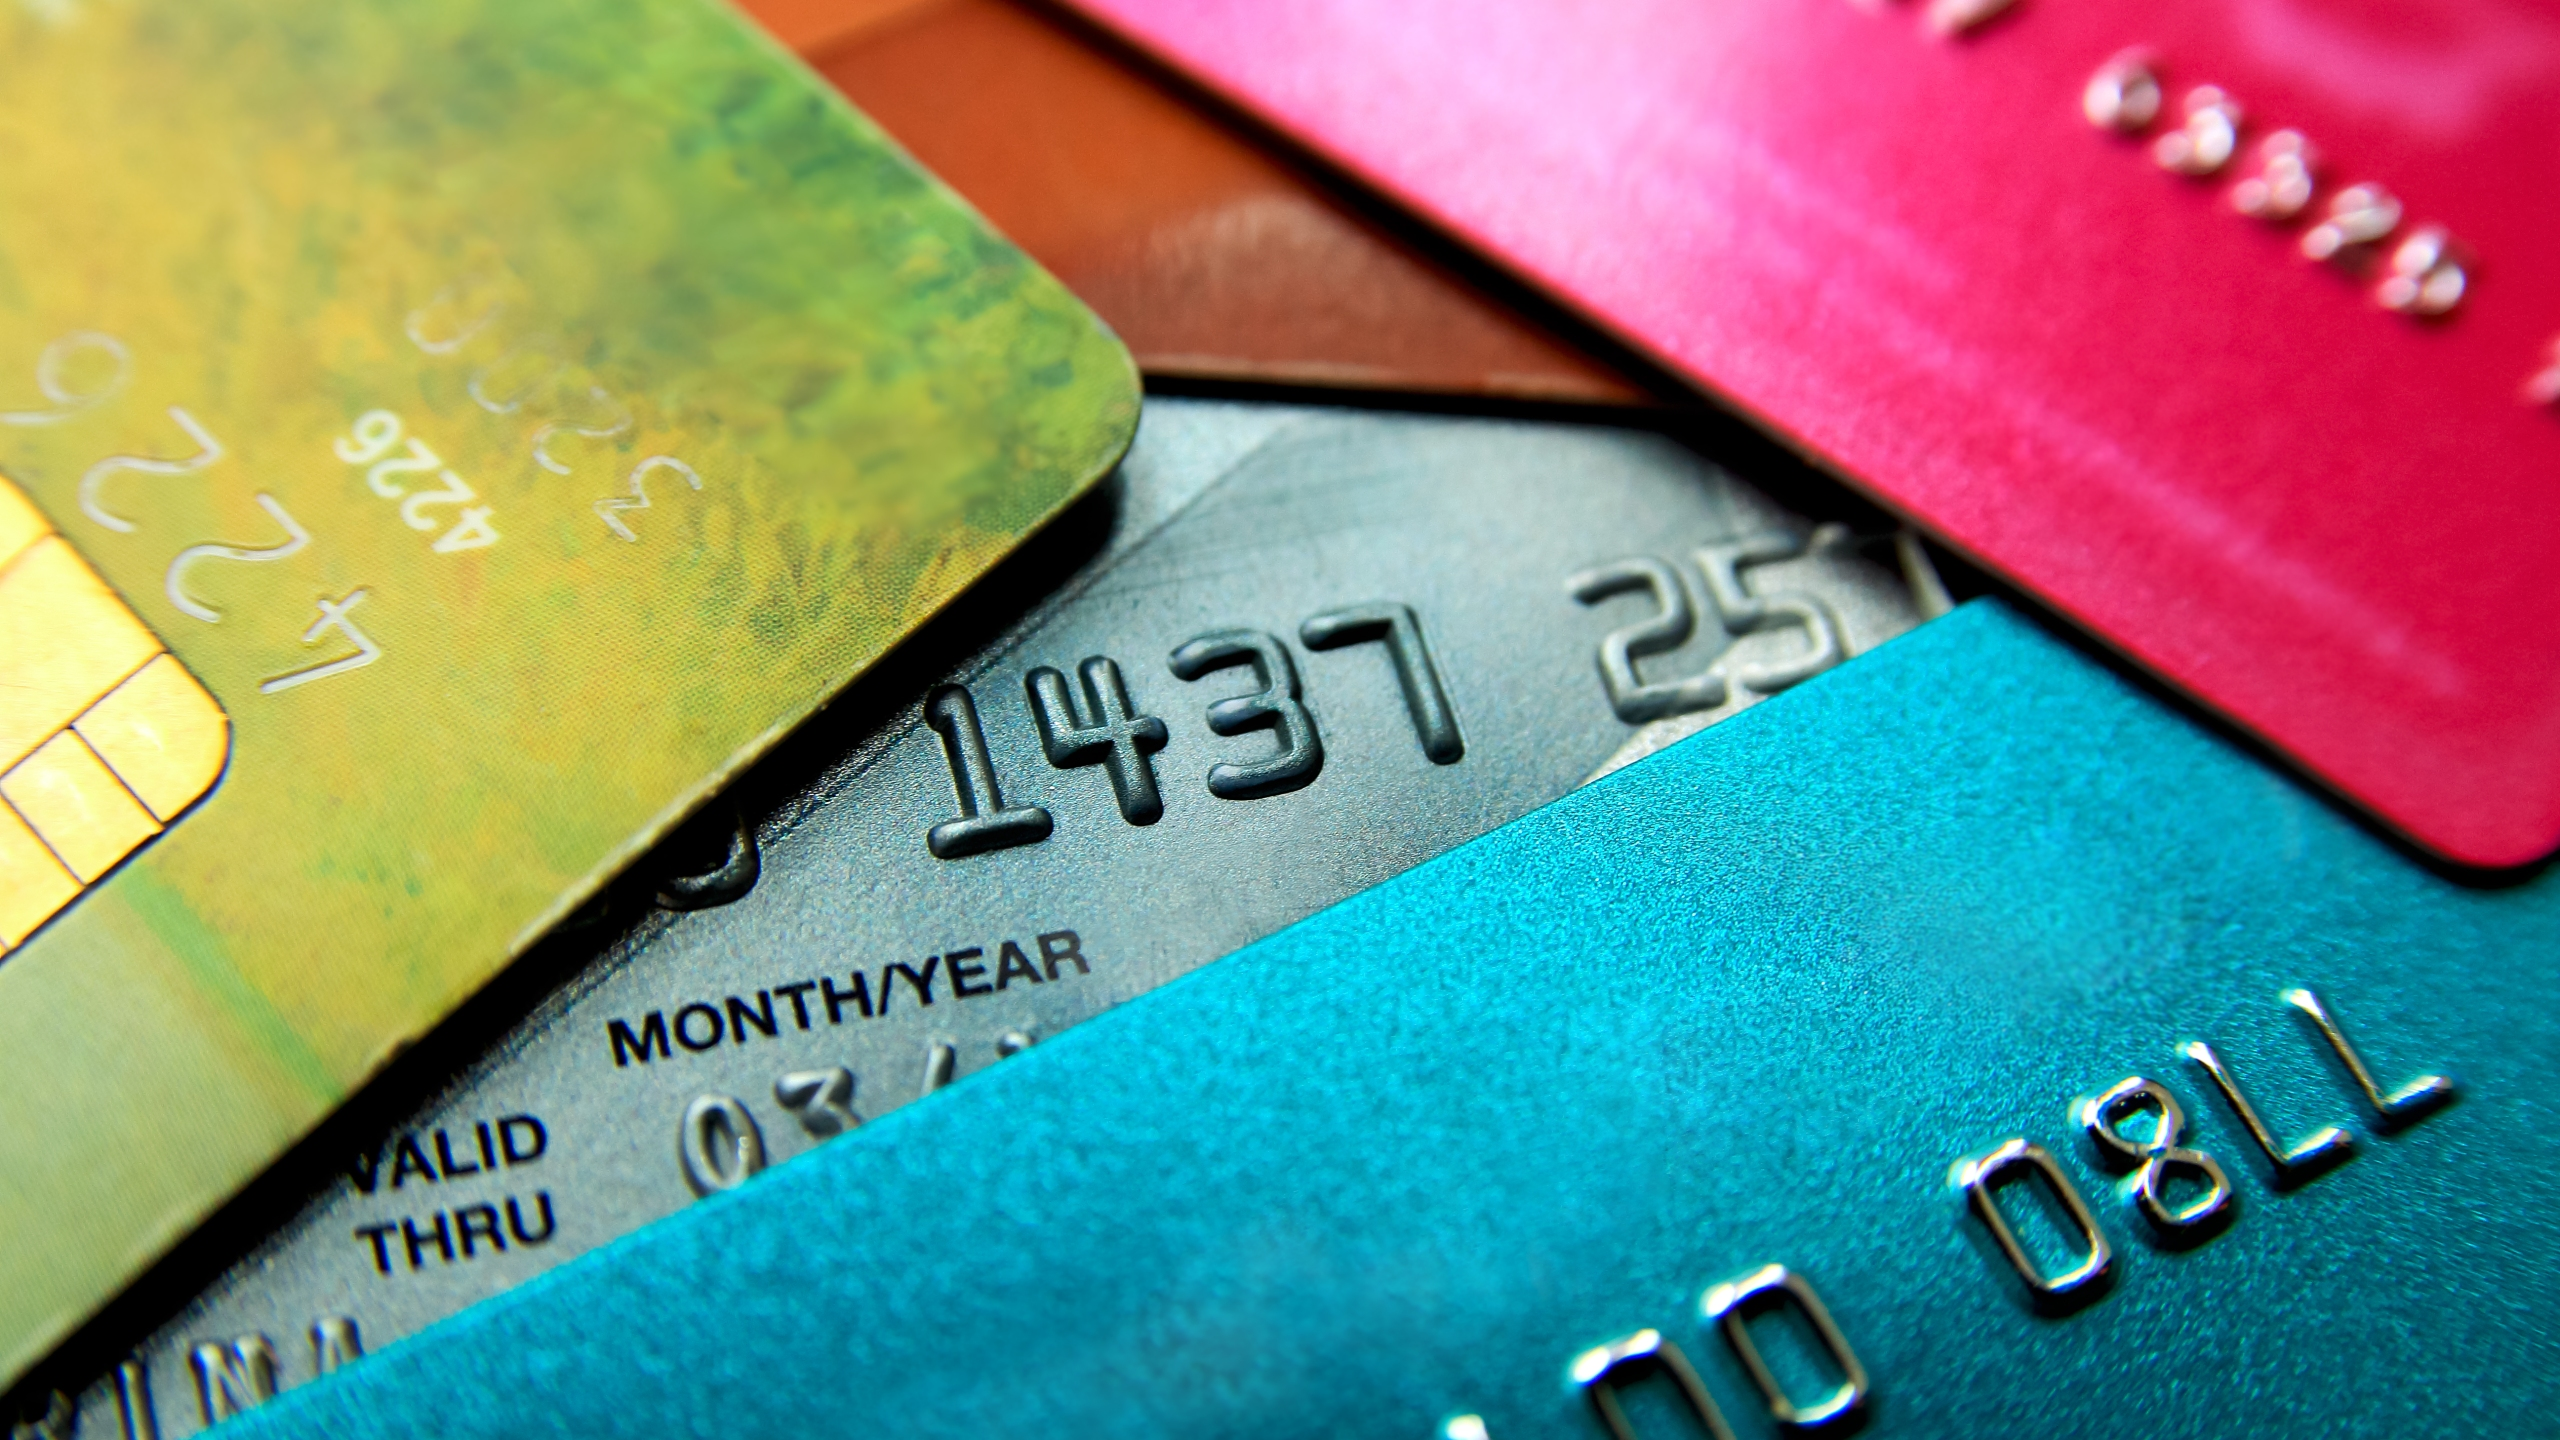 A file photo shows a collection of credit cards. (Credit: alexialex/iStock)